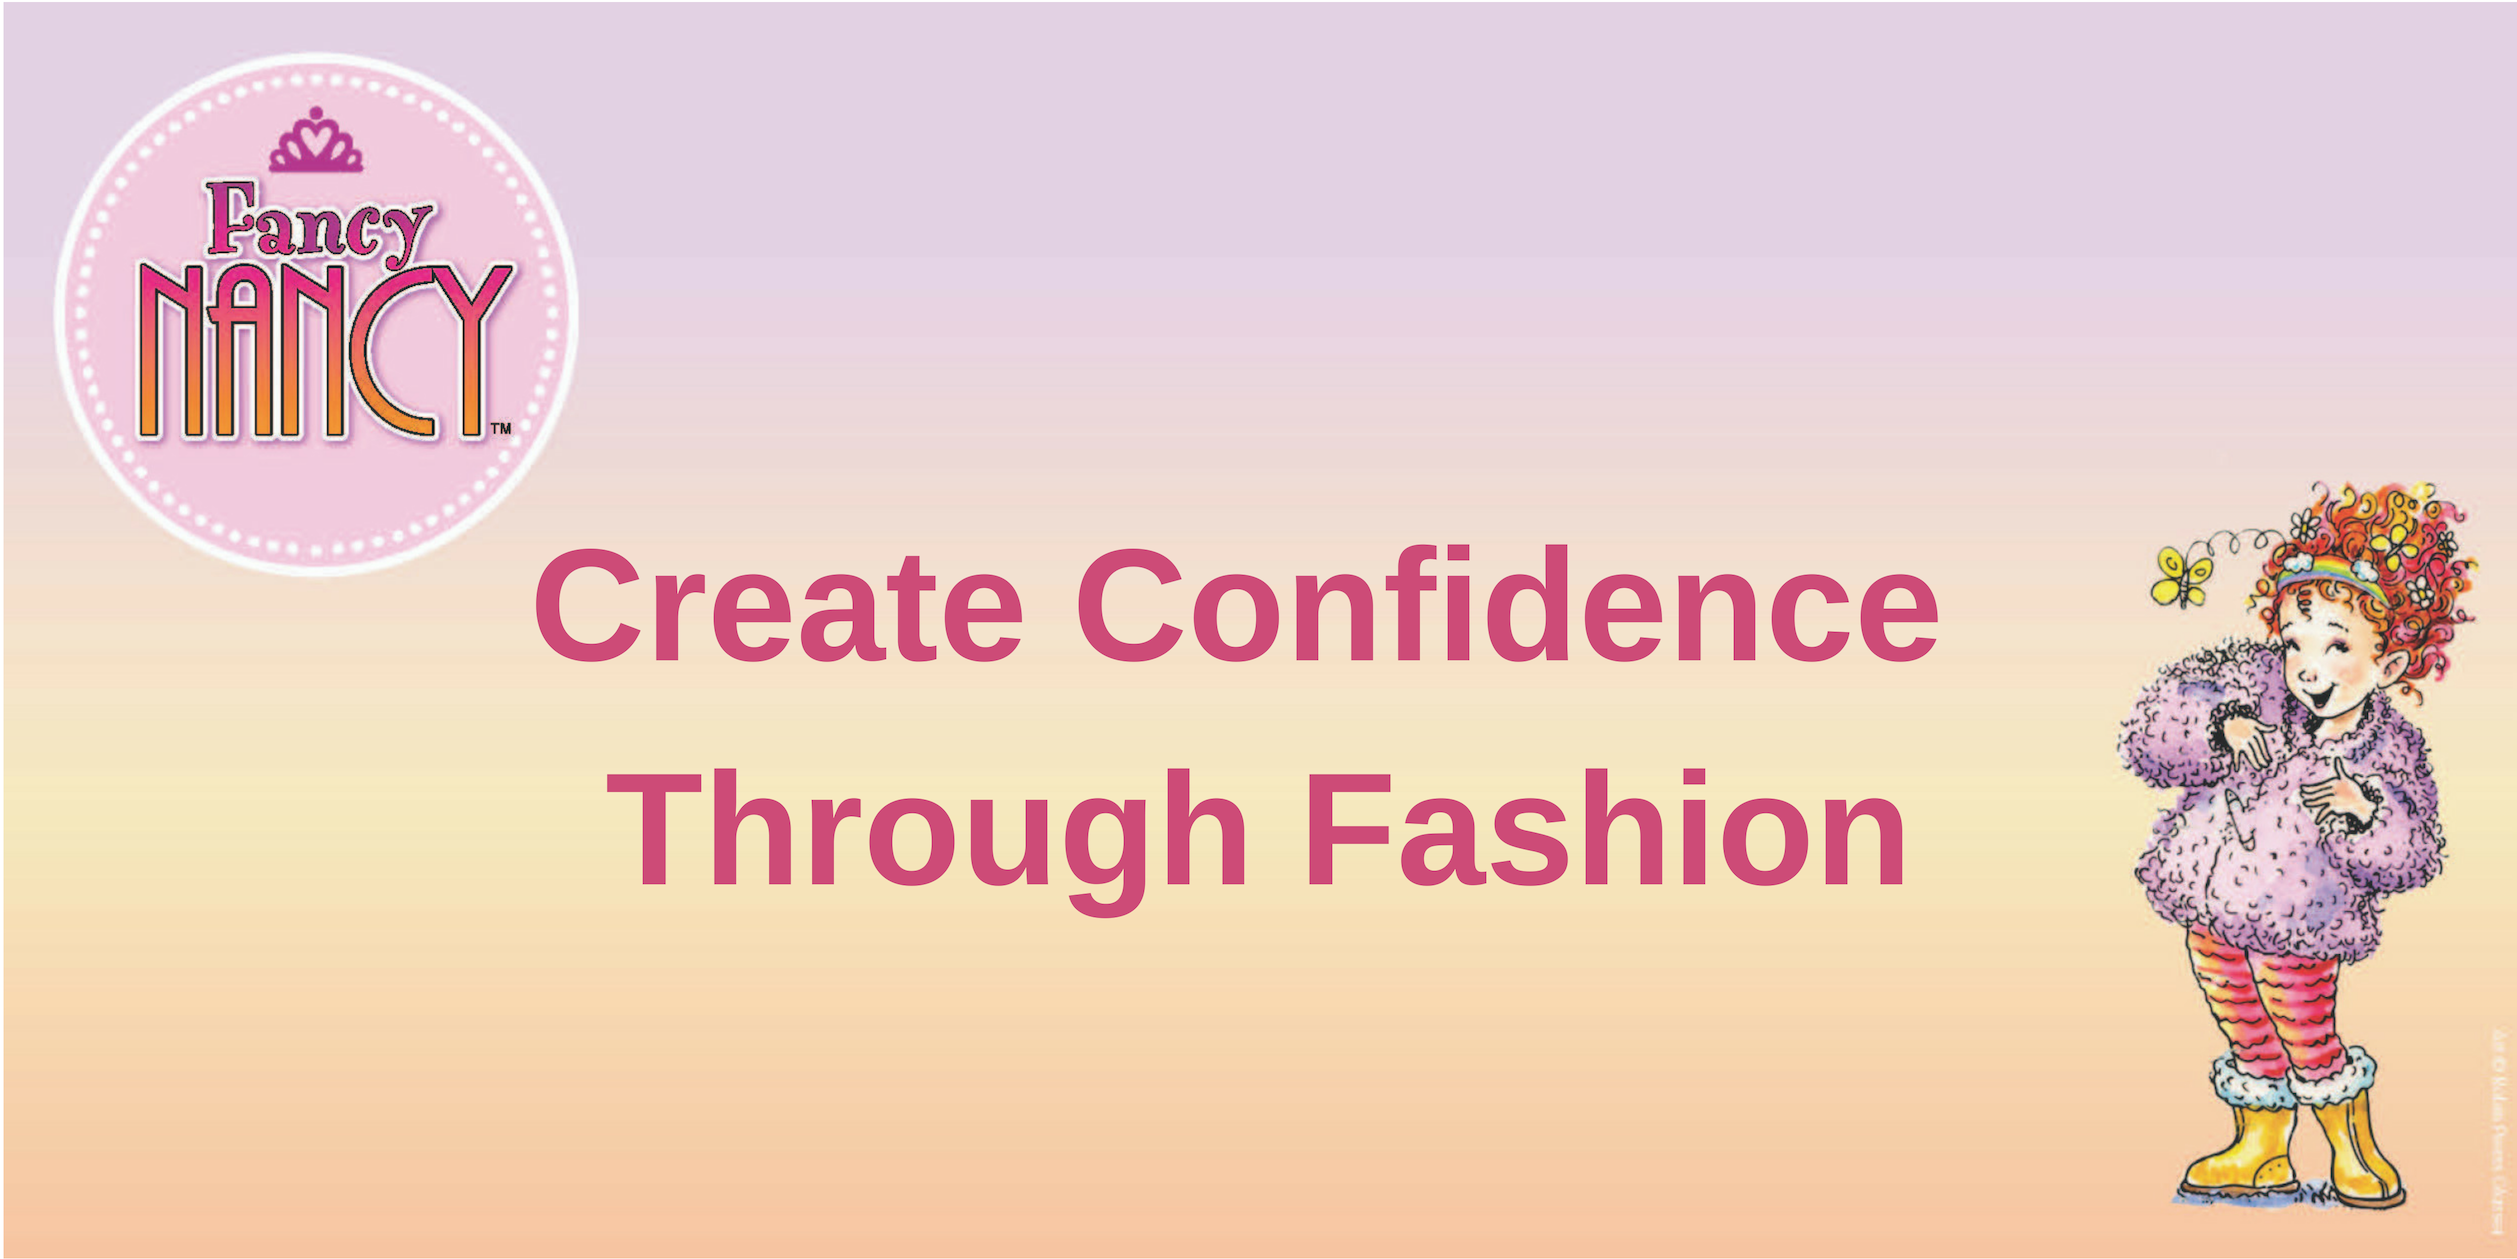 Create Confidence Through Fashion with Fancy Nancy